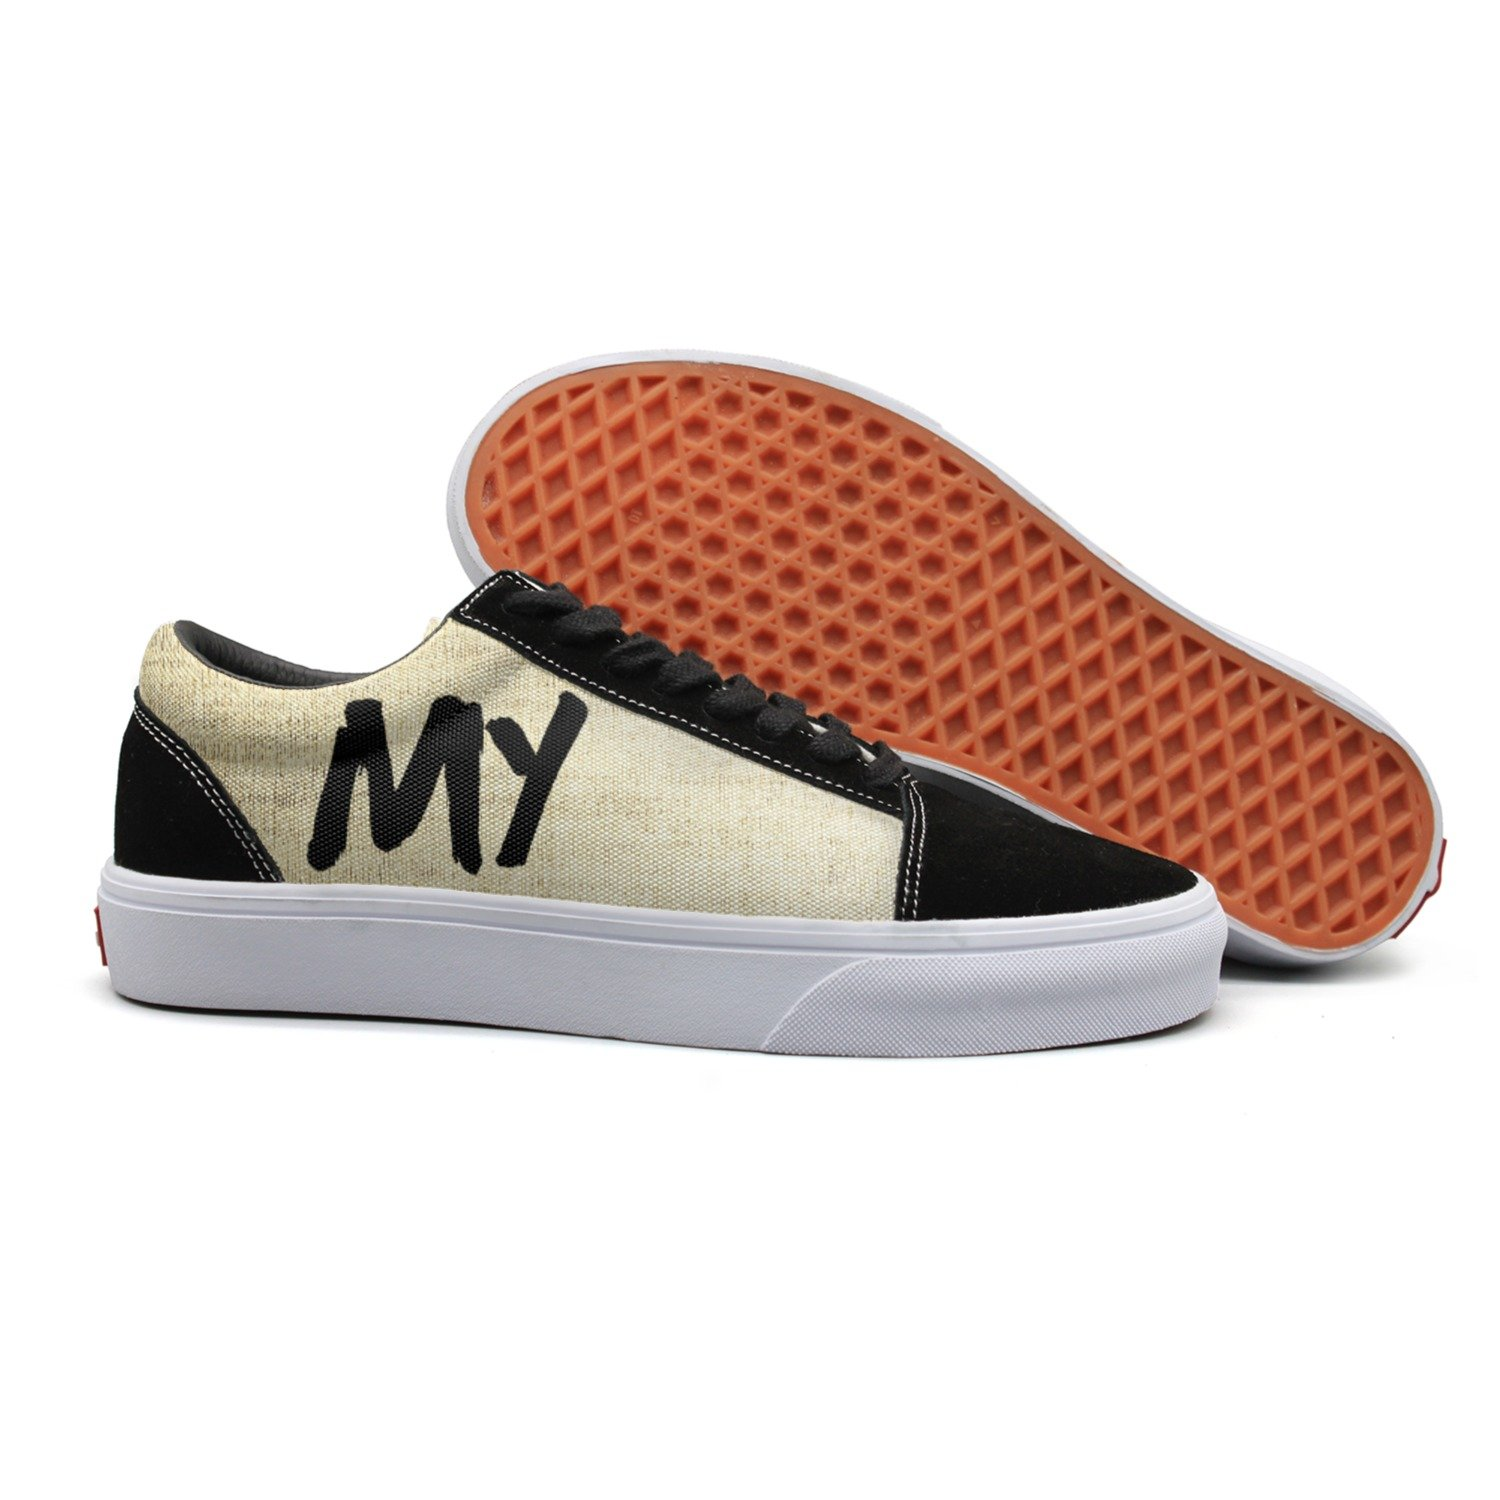 HASIDHDNAC CoolSneaker Comfort Footwear For Women I Love My Awesome HusbandWedding Gifts Sneakers